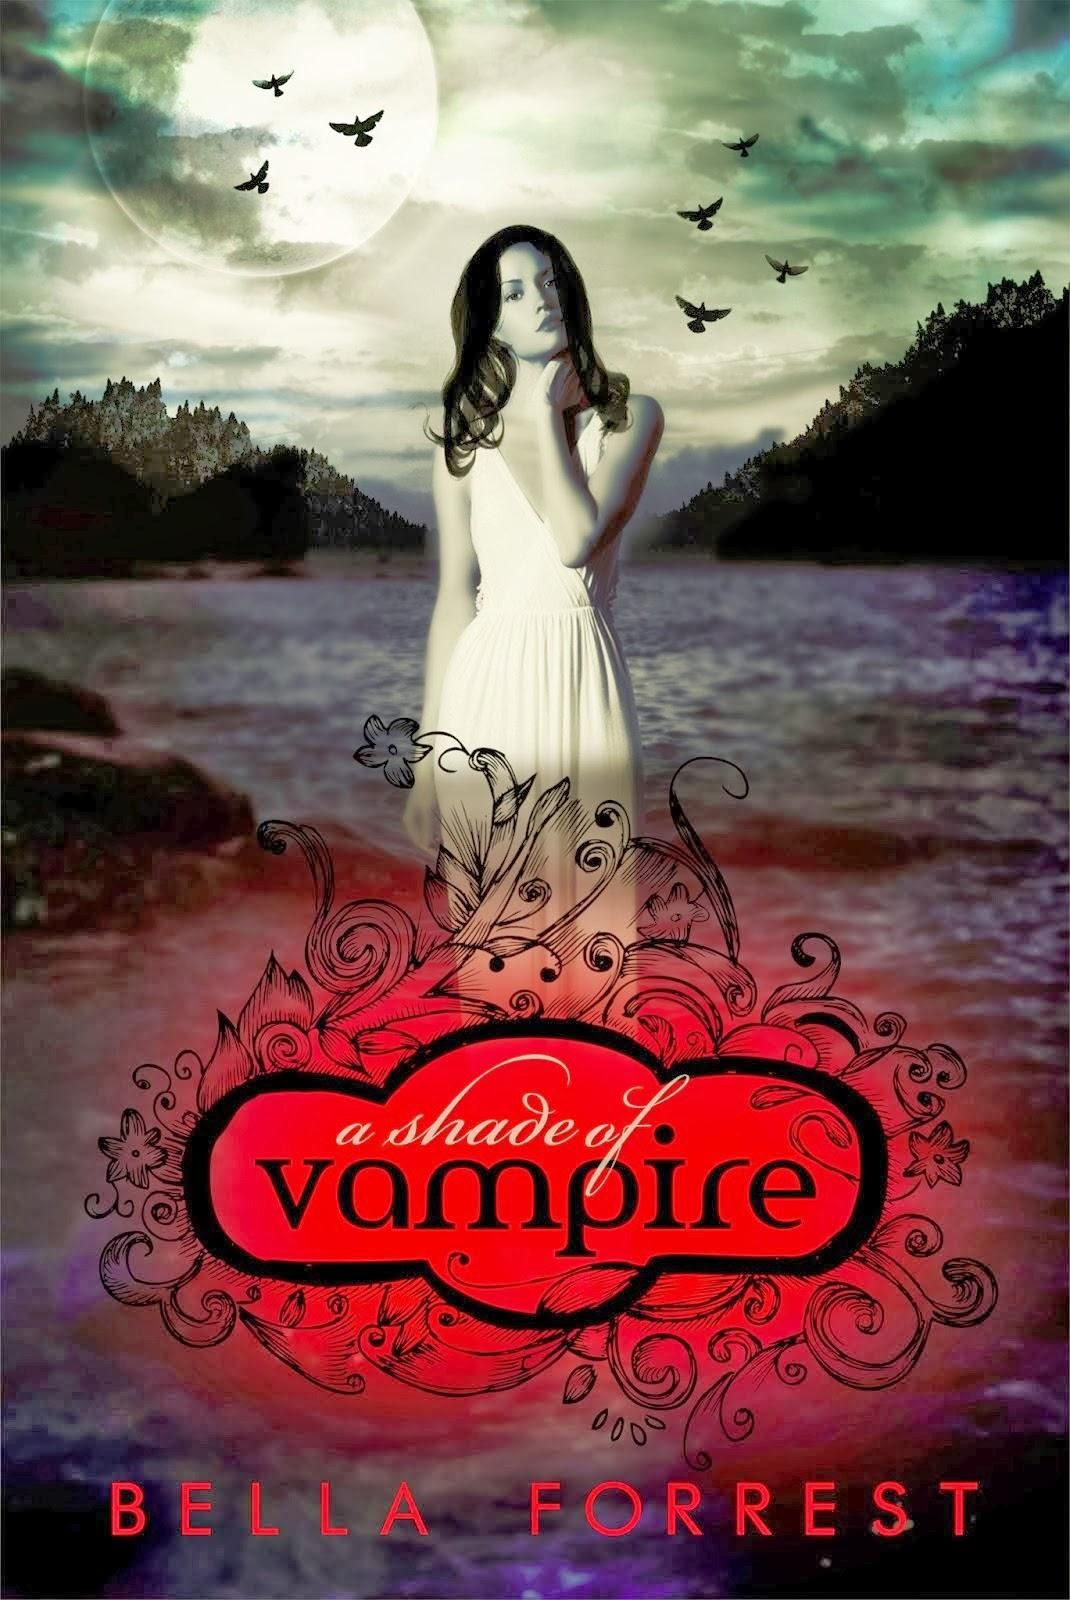 Free Download A Shade Of Vampire By Bella Forrest In Pdf And Epub This Is